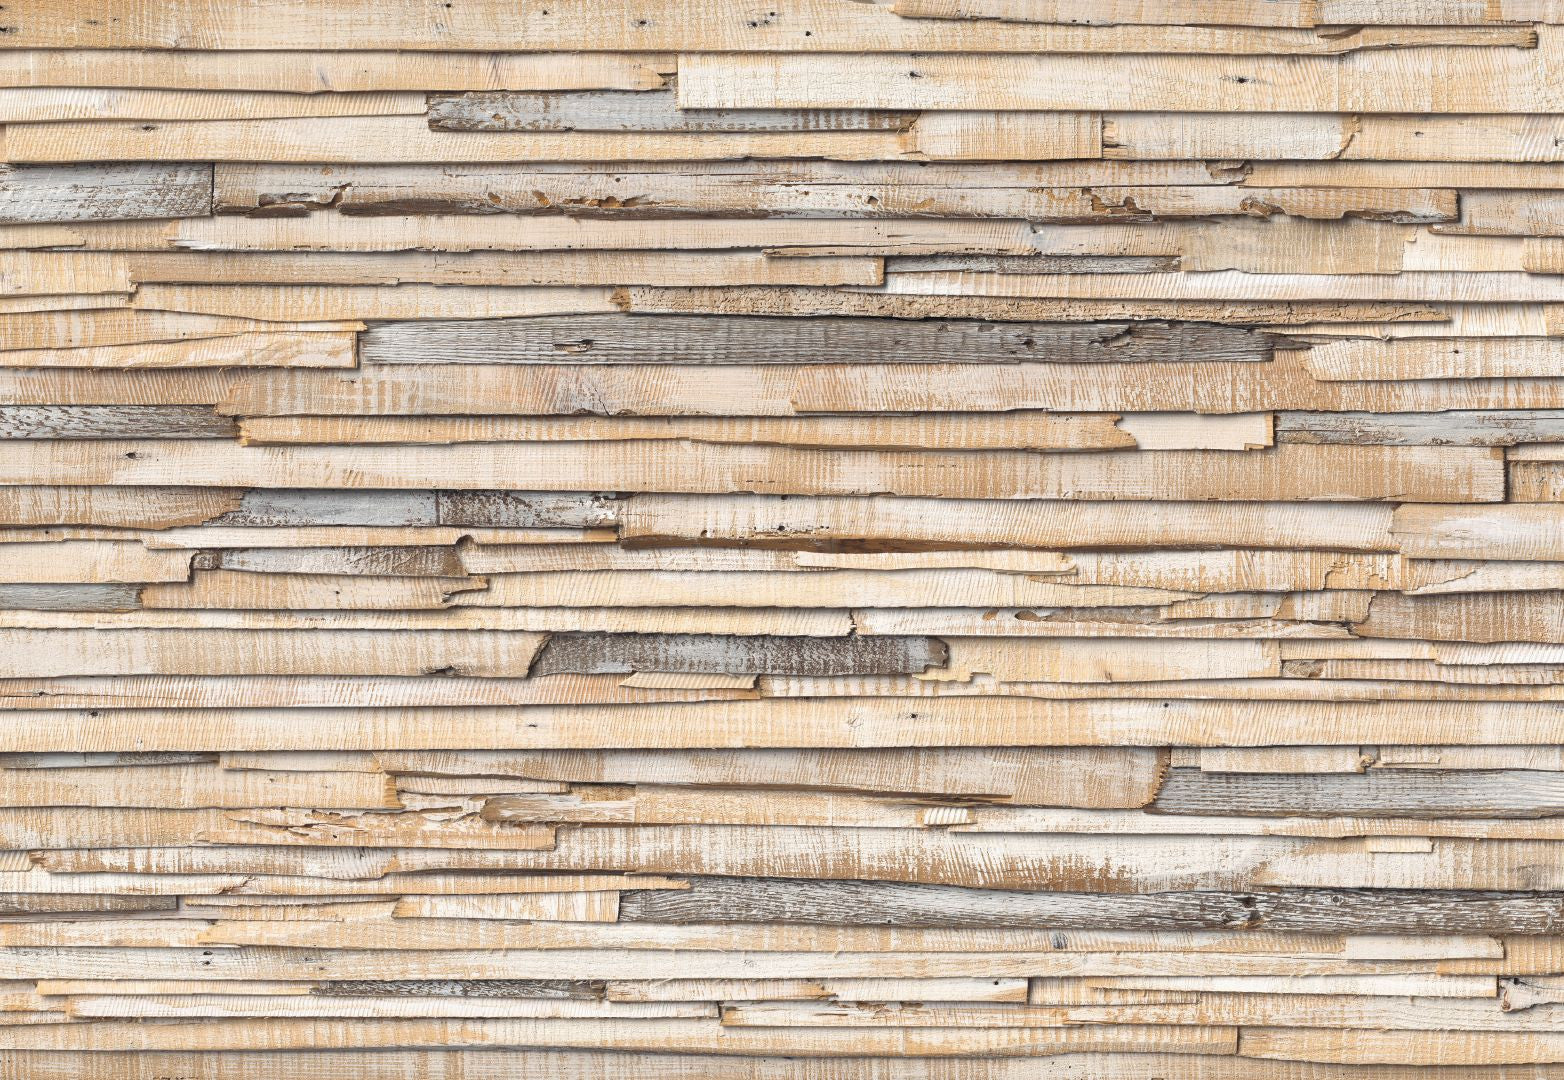 Whitewashed wood wall mural design by komar for brewster for Brewster wallcovering wood panels mural 8 700